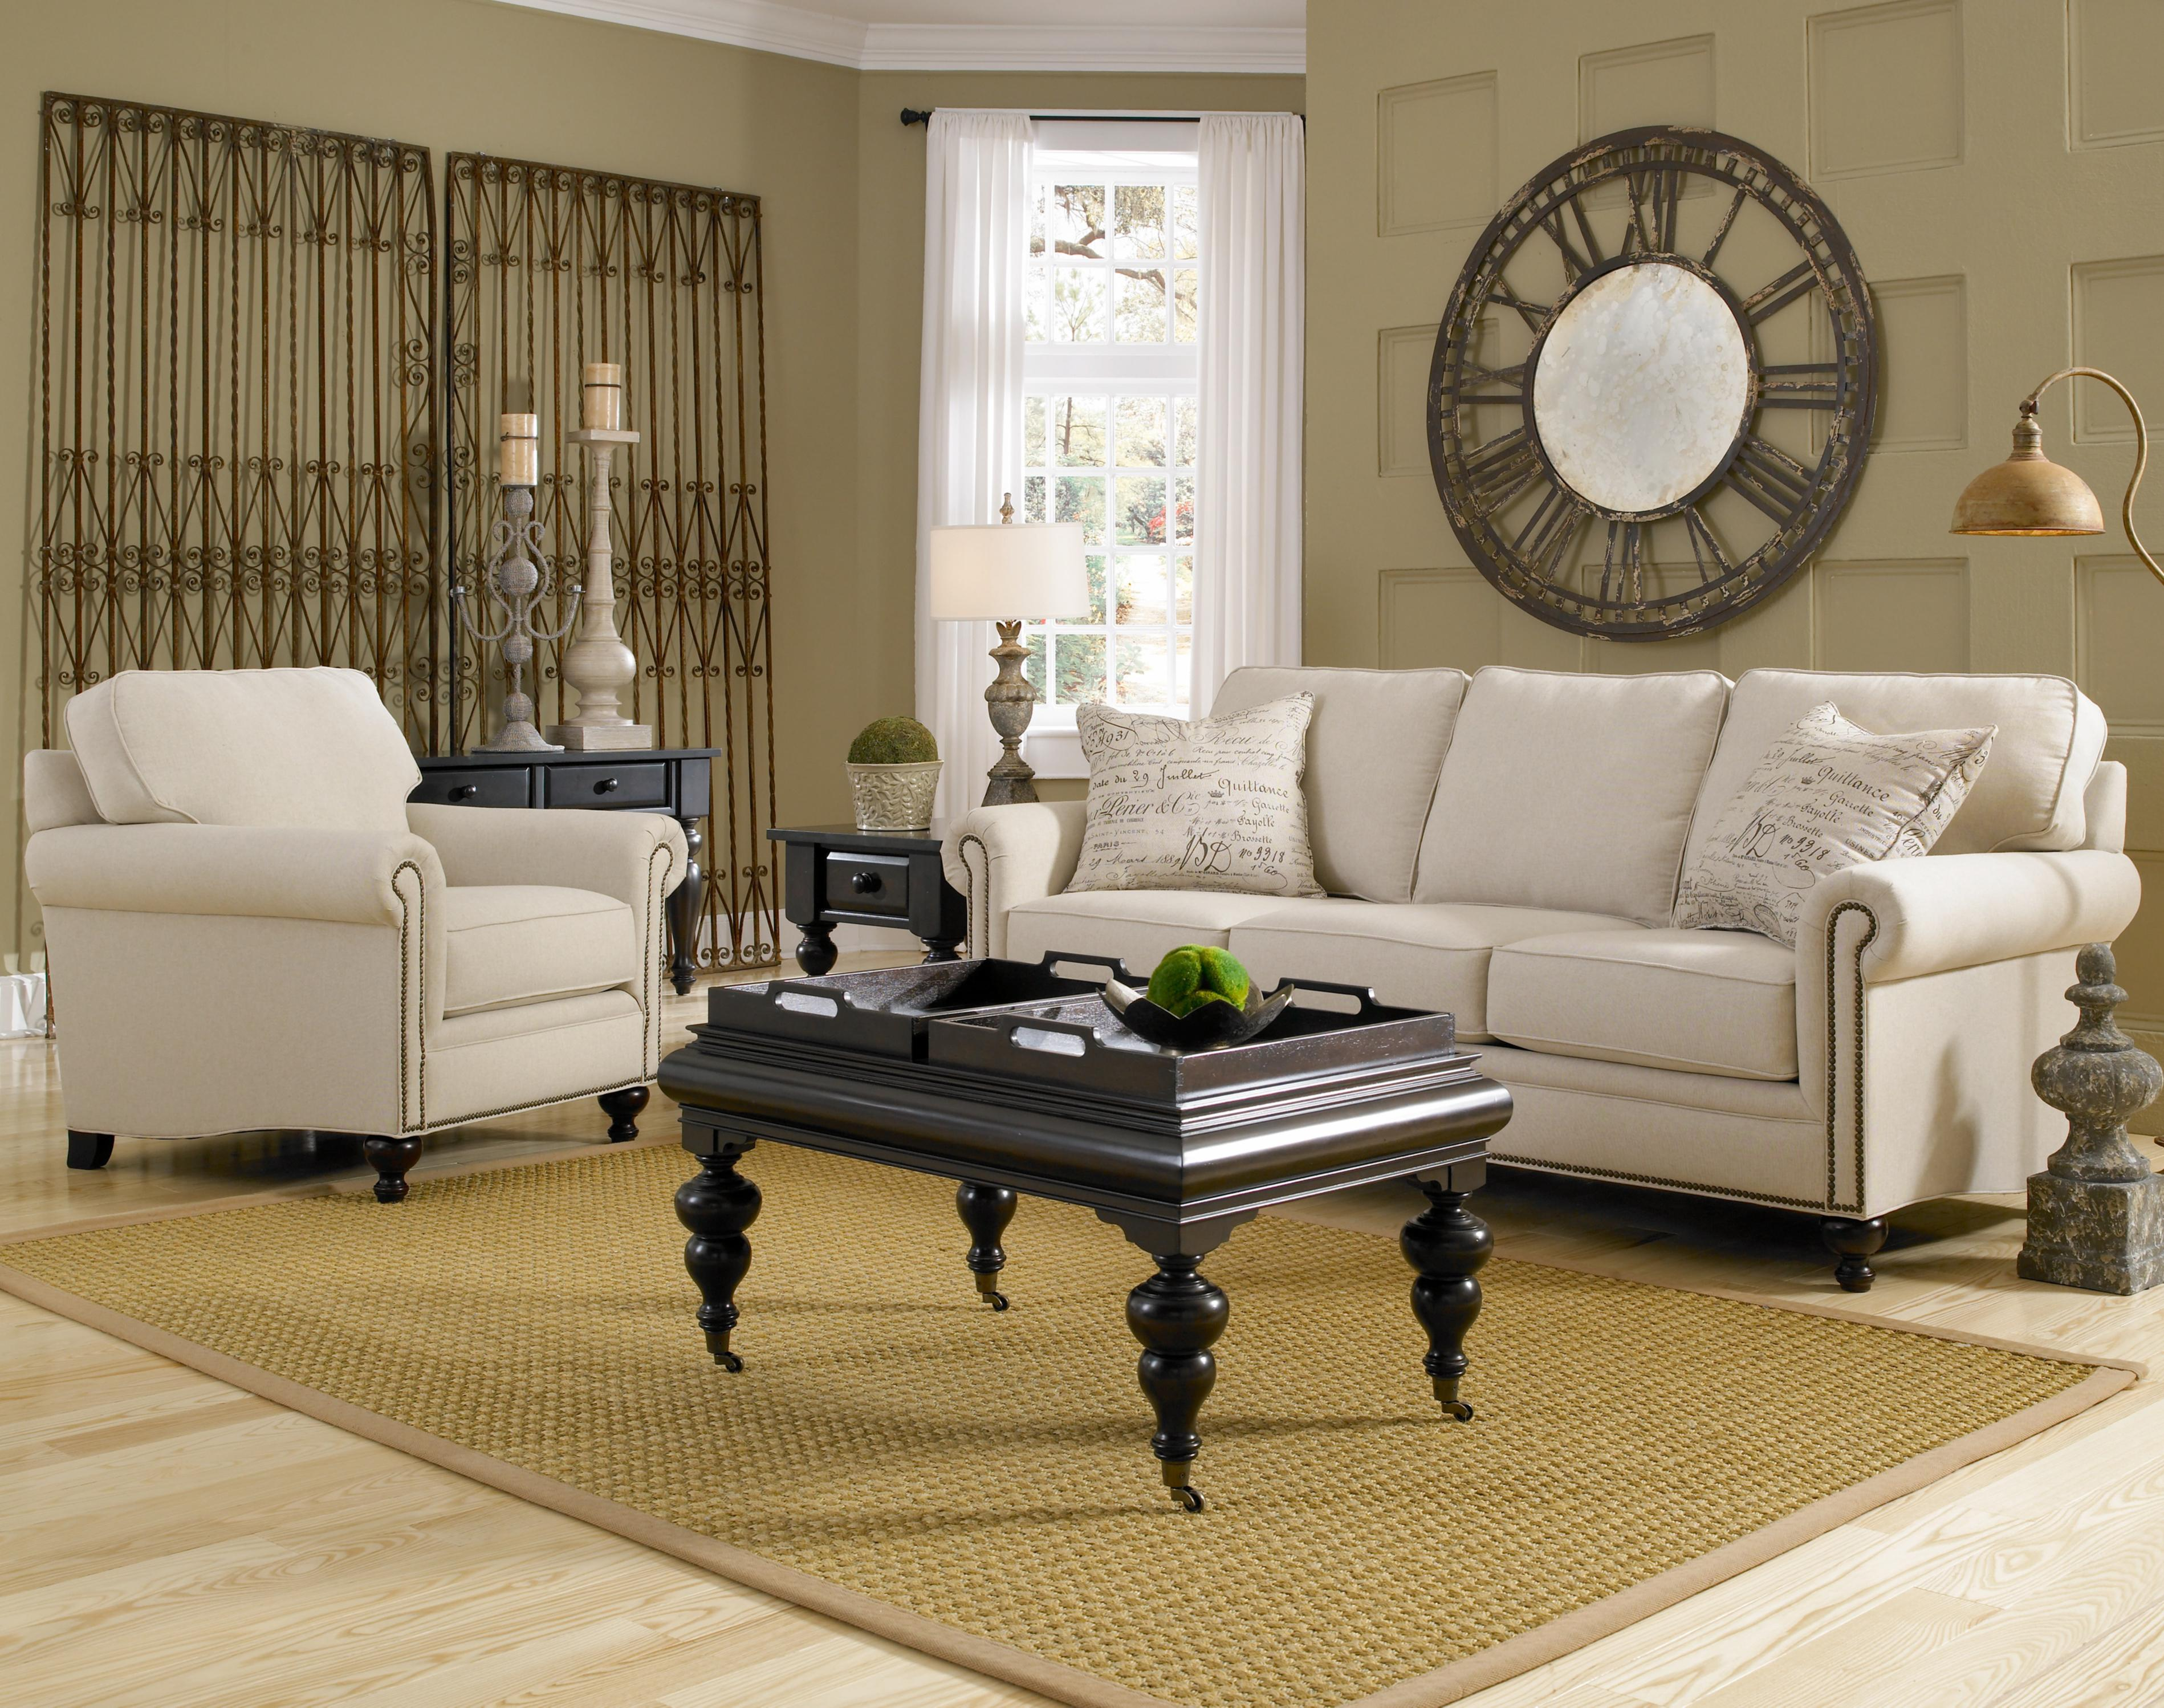 Charming Fabric White Sofa And Black Table With Tray By Broyhill Furniture On Wooden Floor With Rug For Living Room Decor Ideas